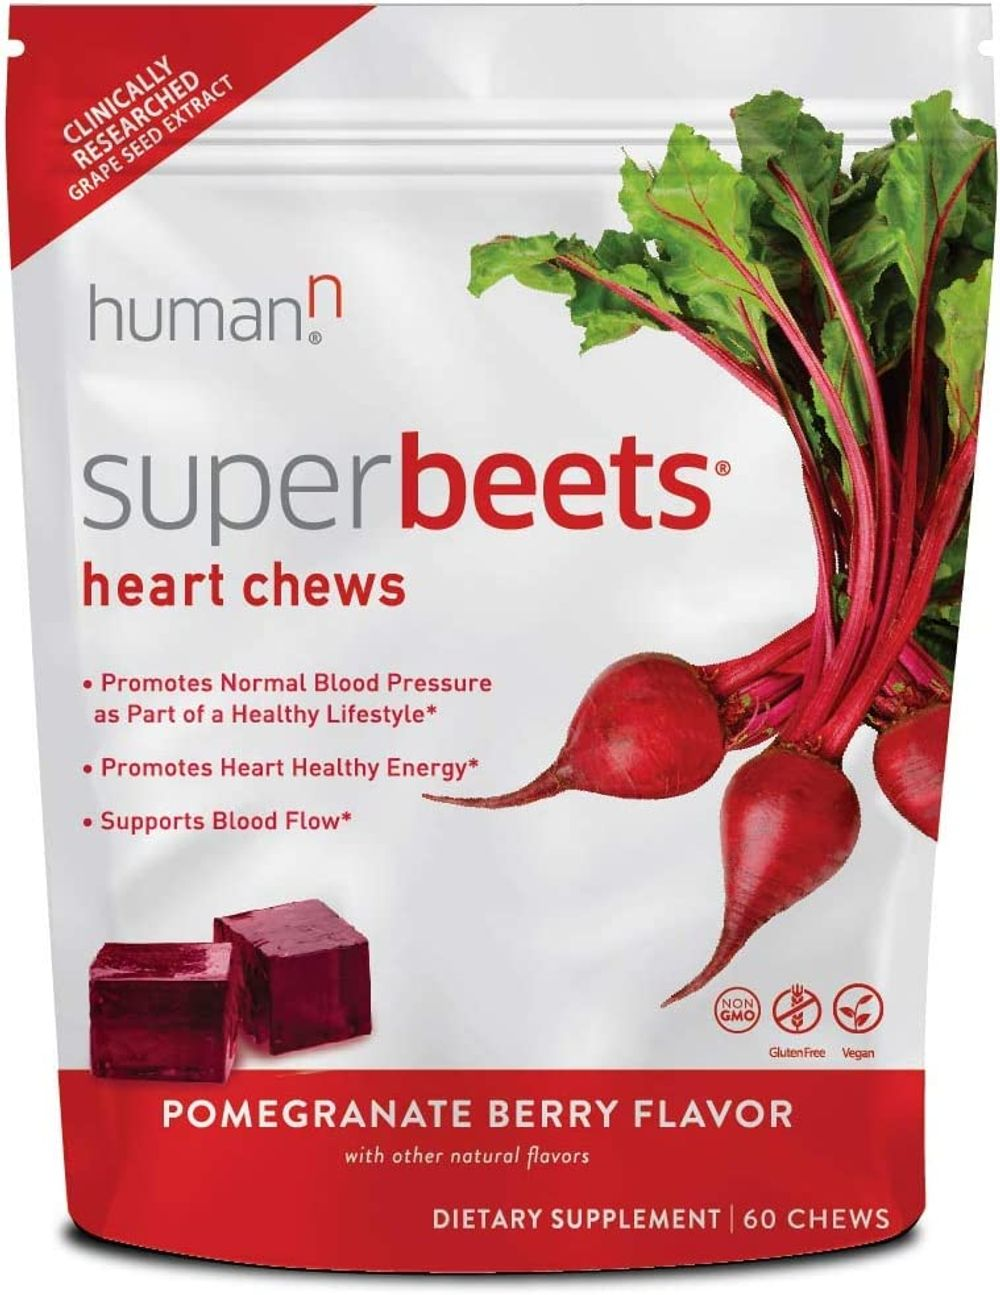 HumanN SuperBeets Heart Chews   Grape Seed Extract and Non-GMO Beet Powder Helps Support Healthy Circulation, Blood Pressure, and Energy, Pomegranate-Berry Flavor, 60-Count